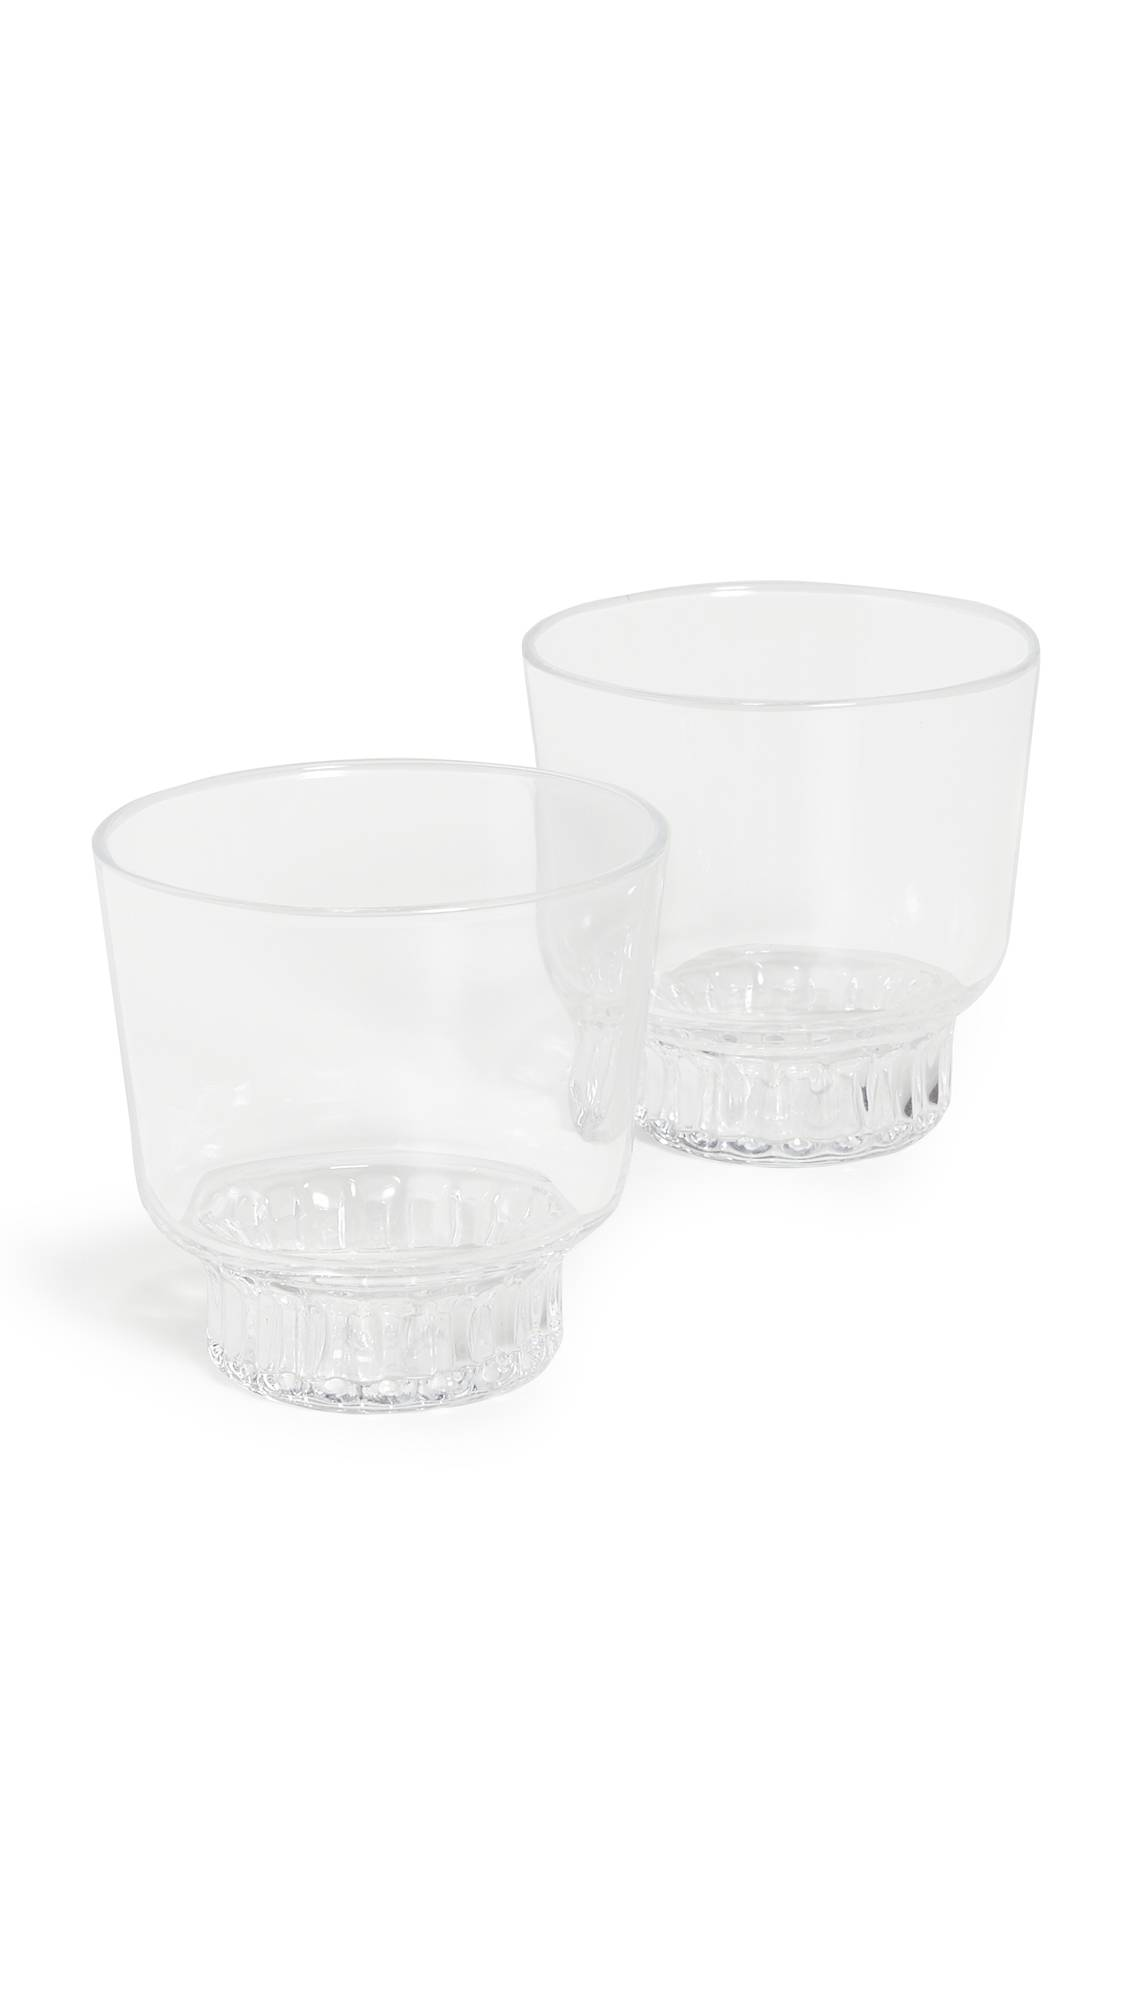 Areaware Ridge Kitchen Glasses Set Of 2 - Clear - Size: One Size